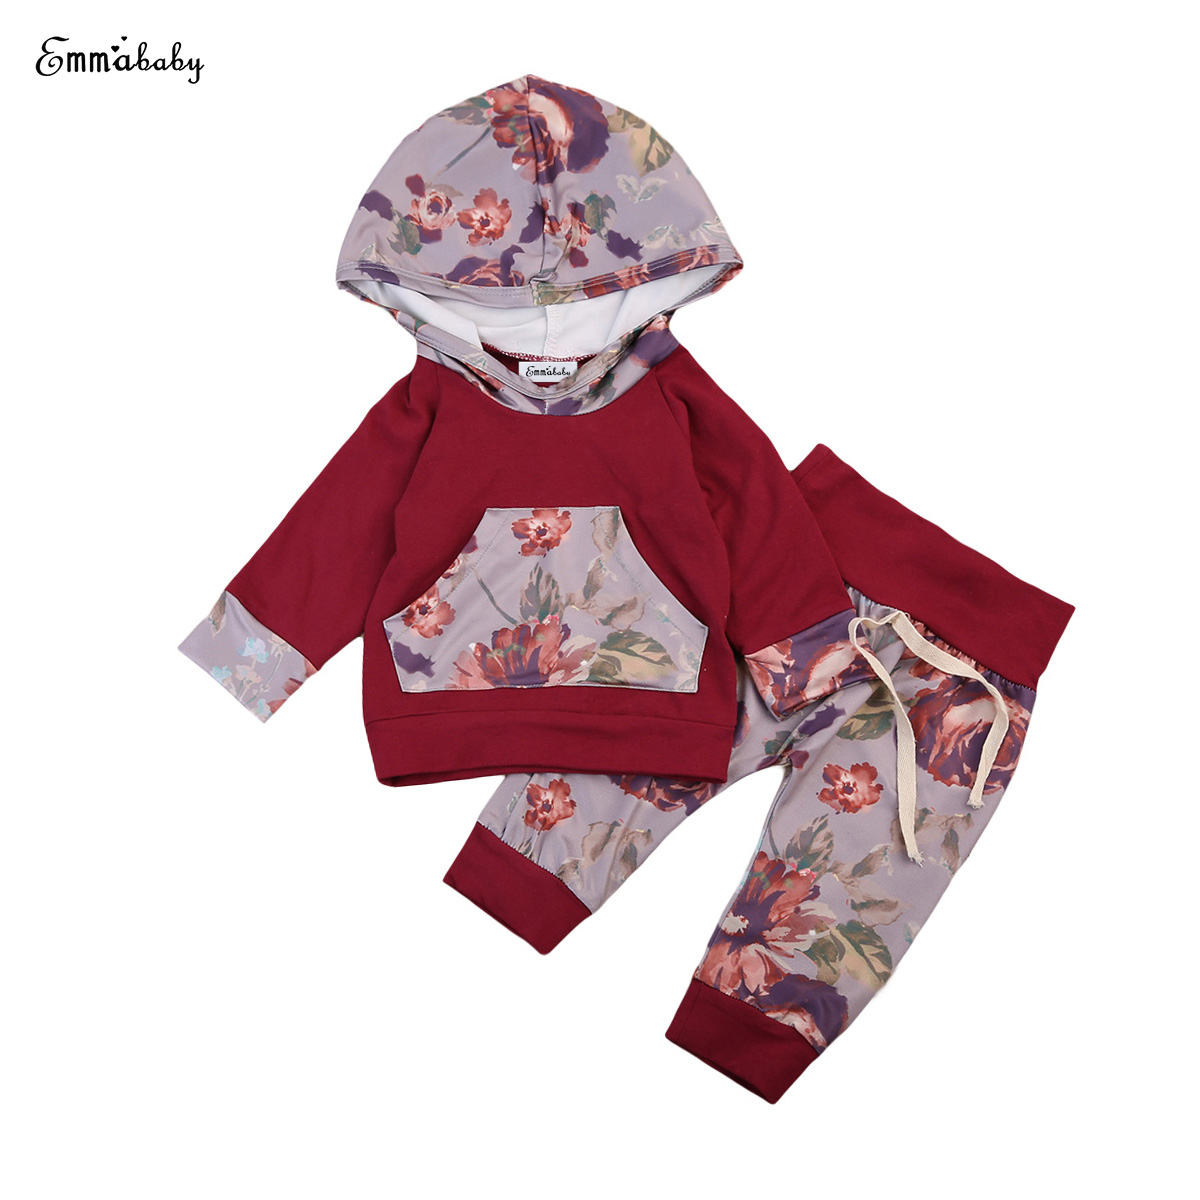 2018 New Fashion Adorable Newborn Toddler Baby Boy Girl Long Sleeve Hooded Tops Leggings Cute Floral Print Outfits Set Clothes